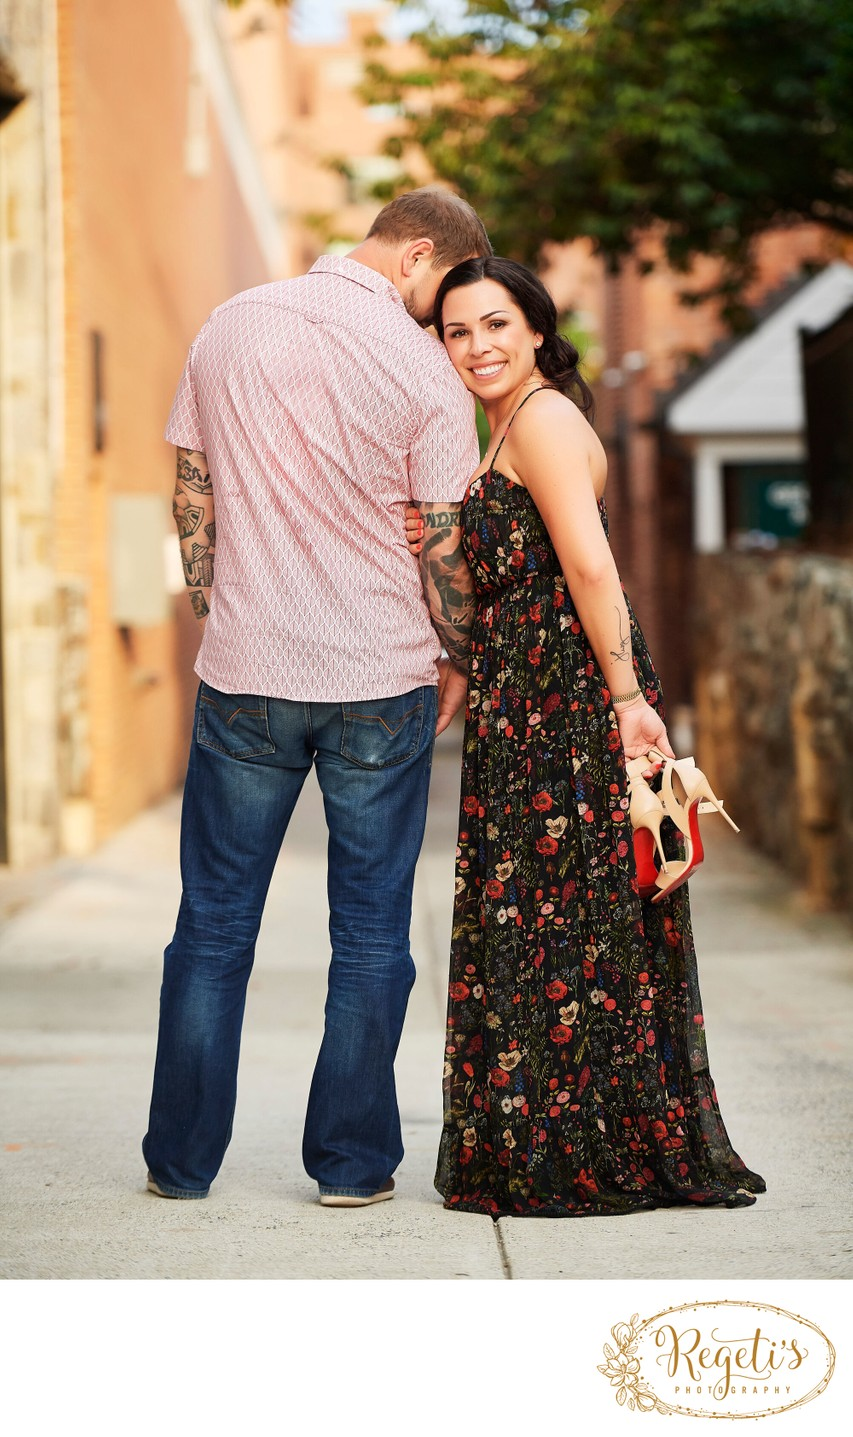 Engagement Session in Georgetown, Washington DC